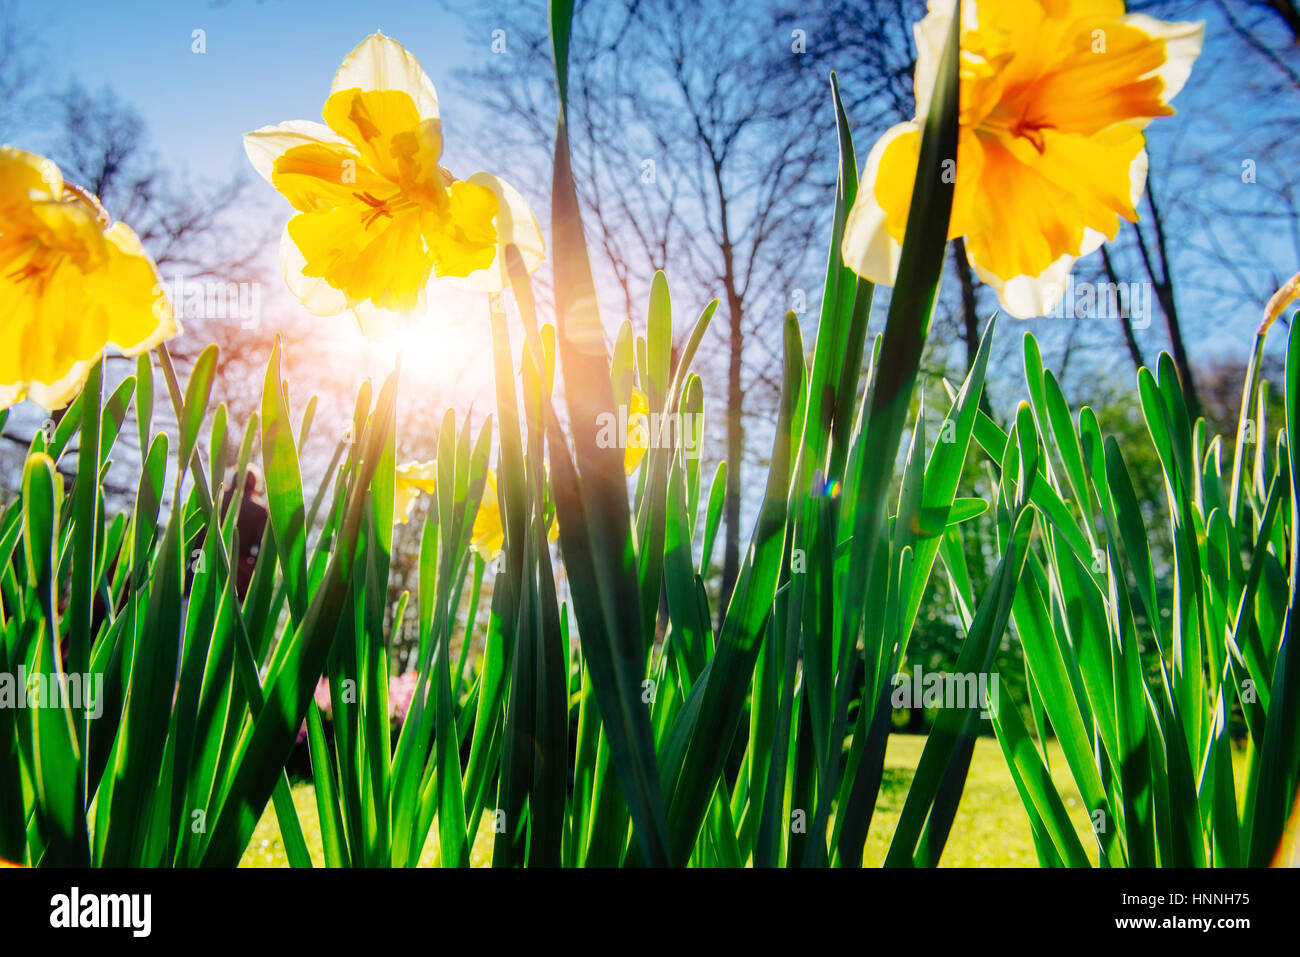 Yellow Daffodils in the gardens of Holland - Stock Image